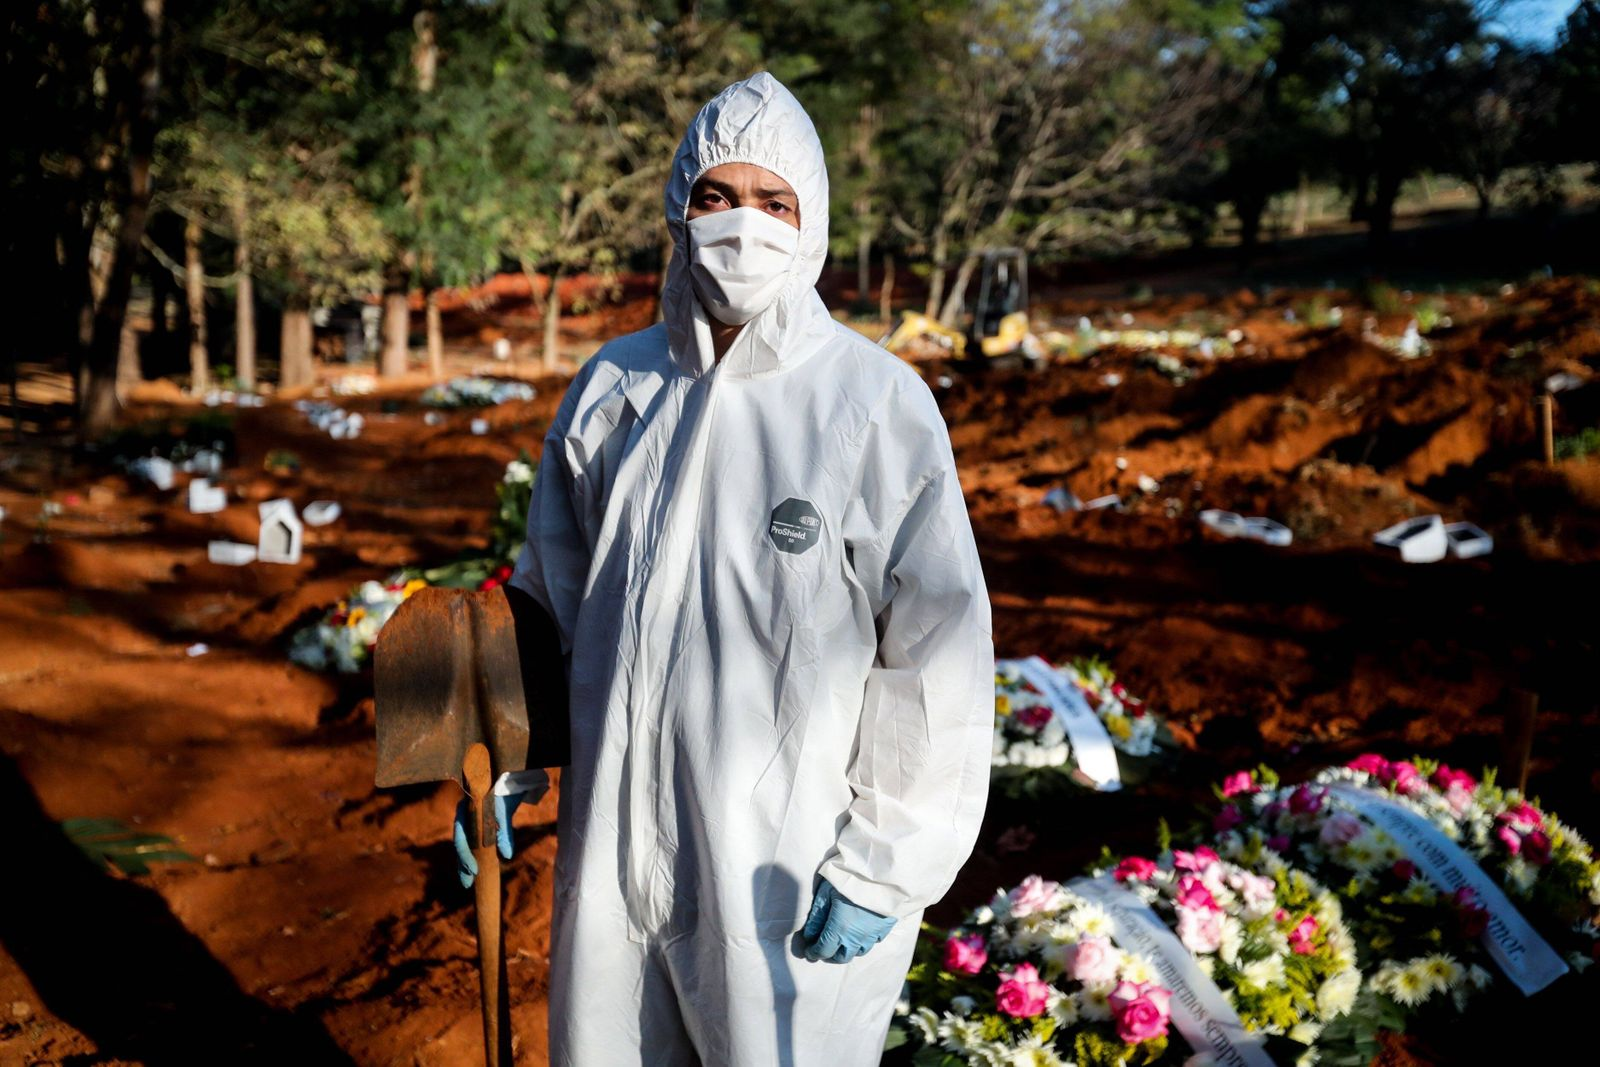 Gravediggers work in the Vila Formosa cemetery, in Sao Paulo, Brazil, 18 May 2020 (issued 19 May). Twelve hours and 62